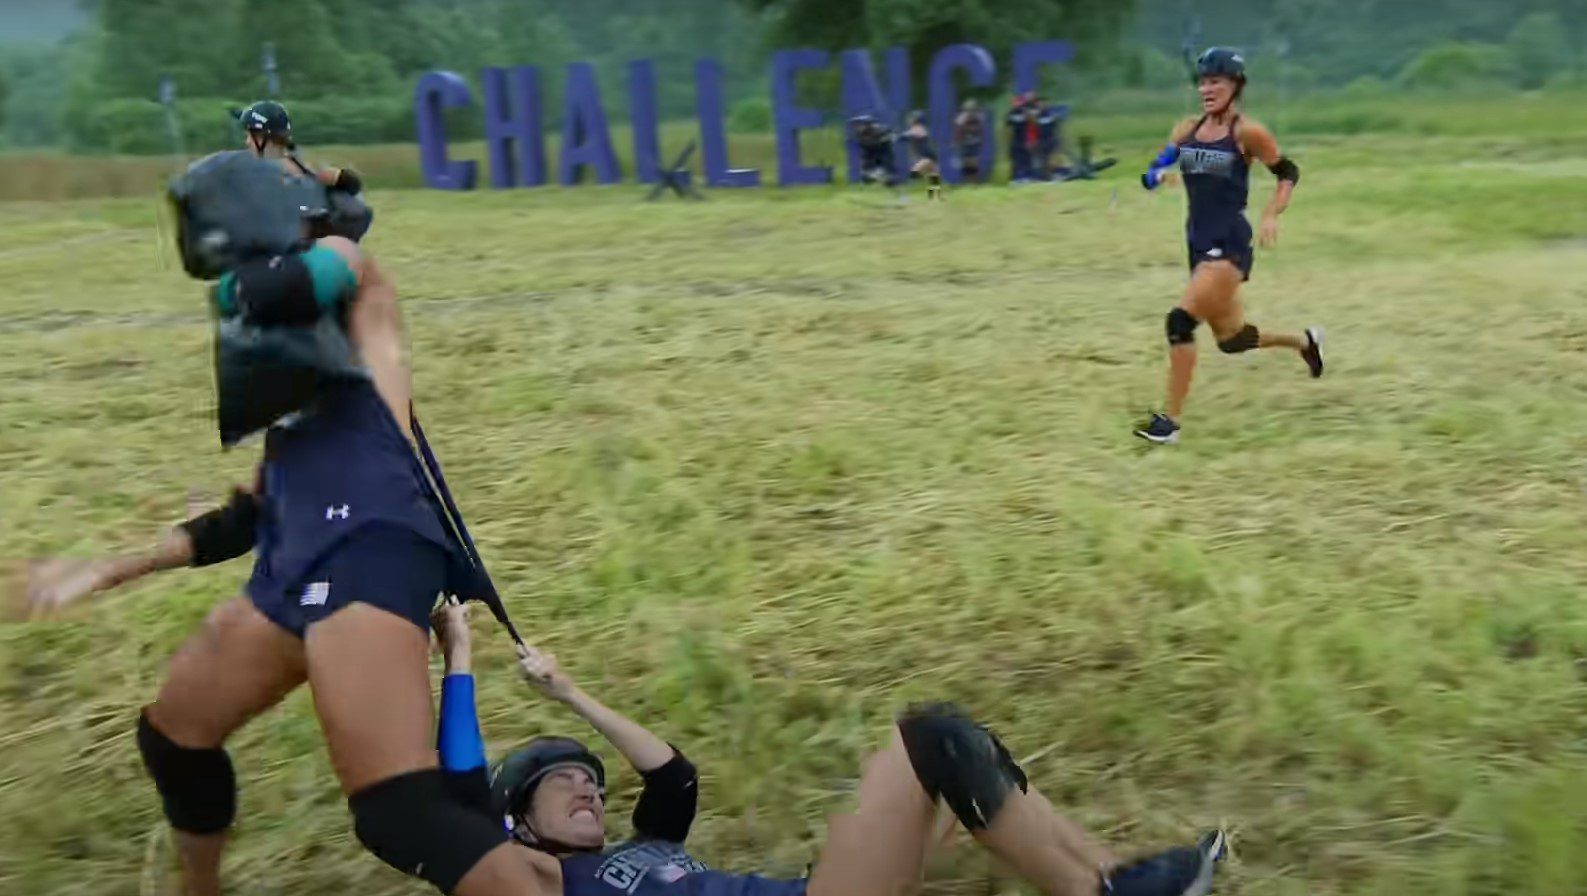 Where is the New Challenge filmed?